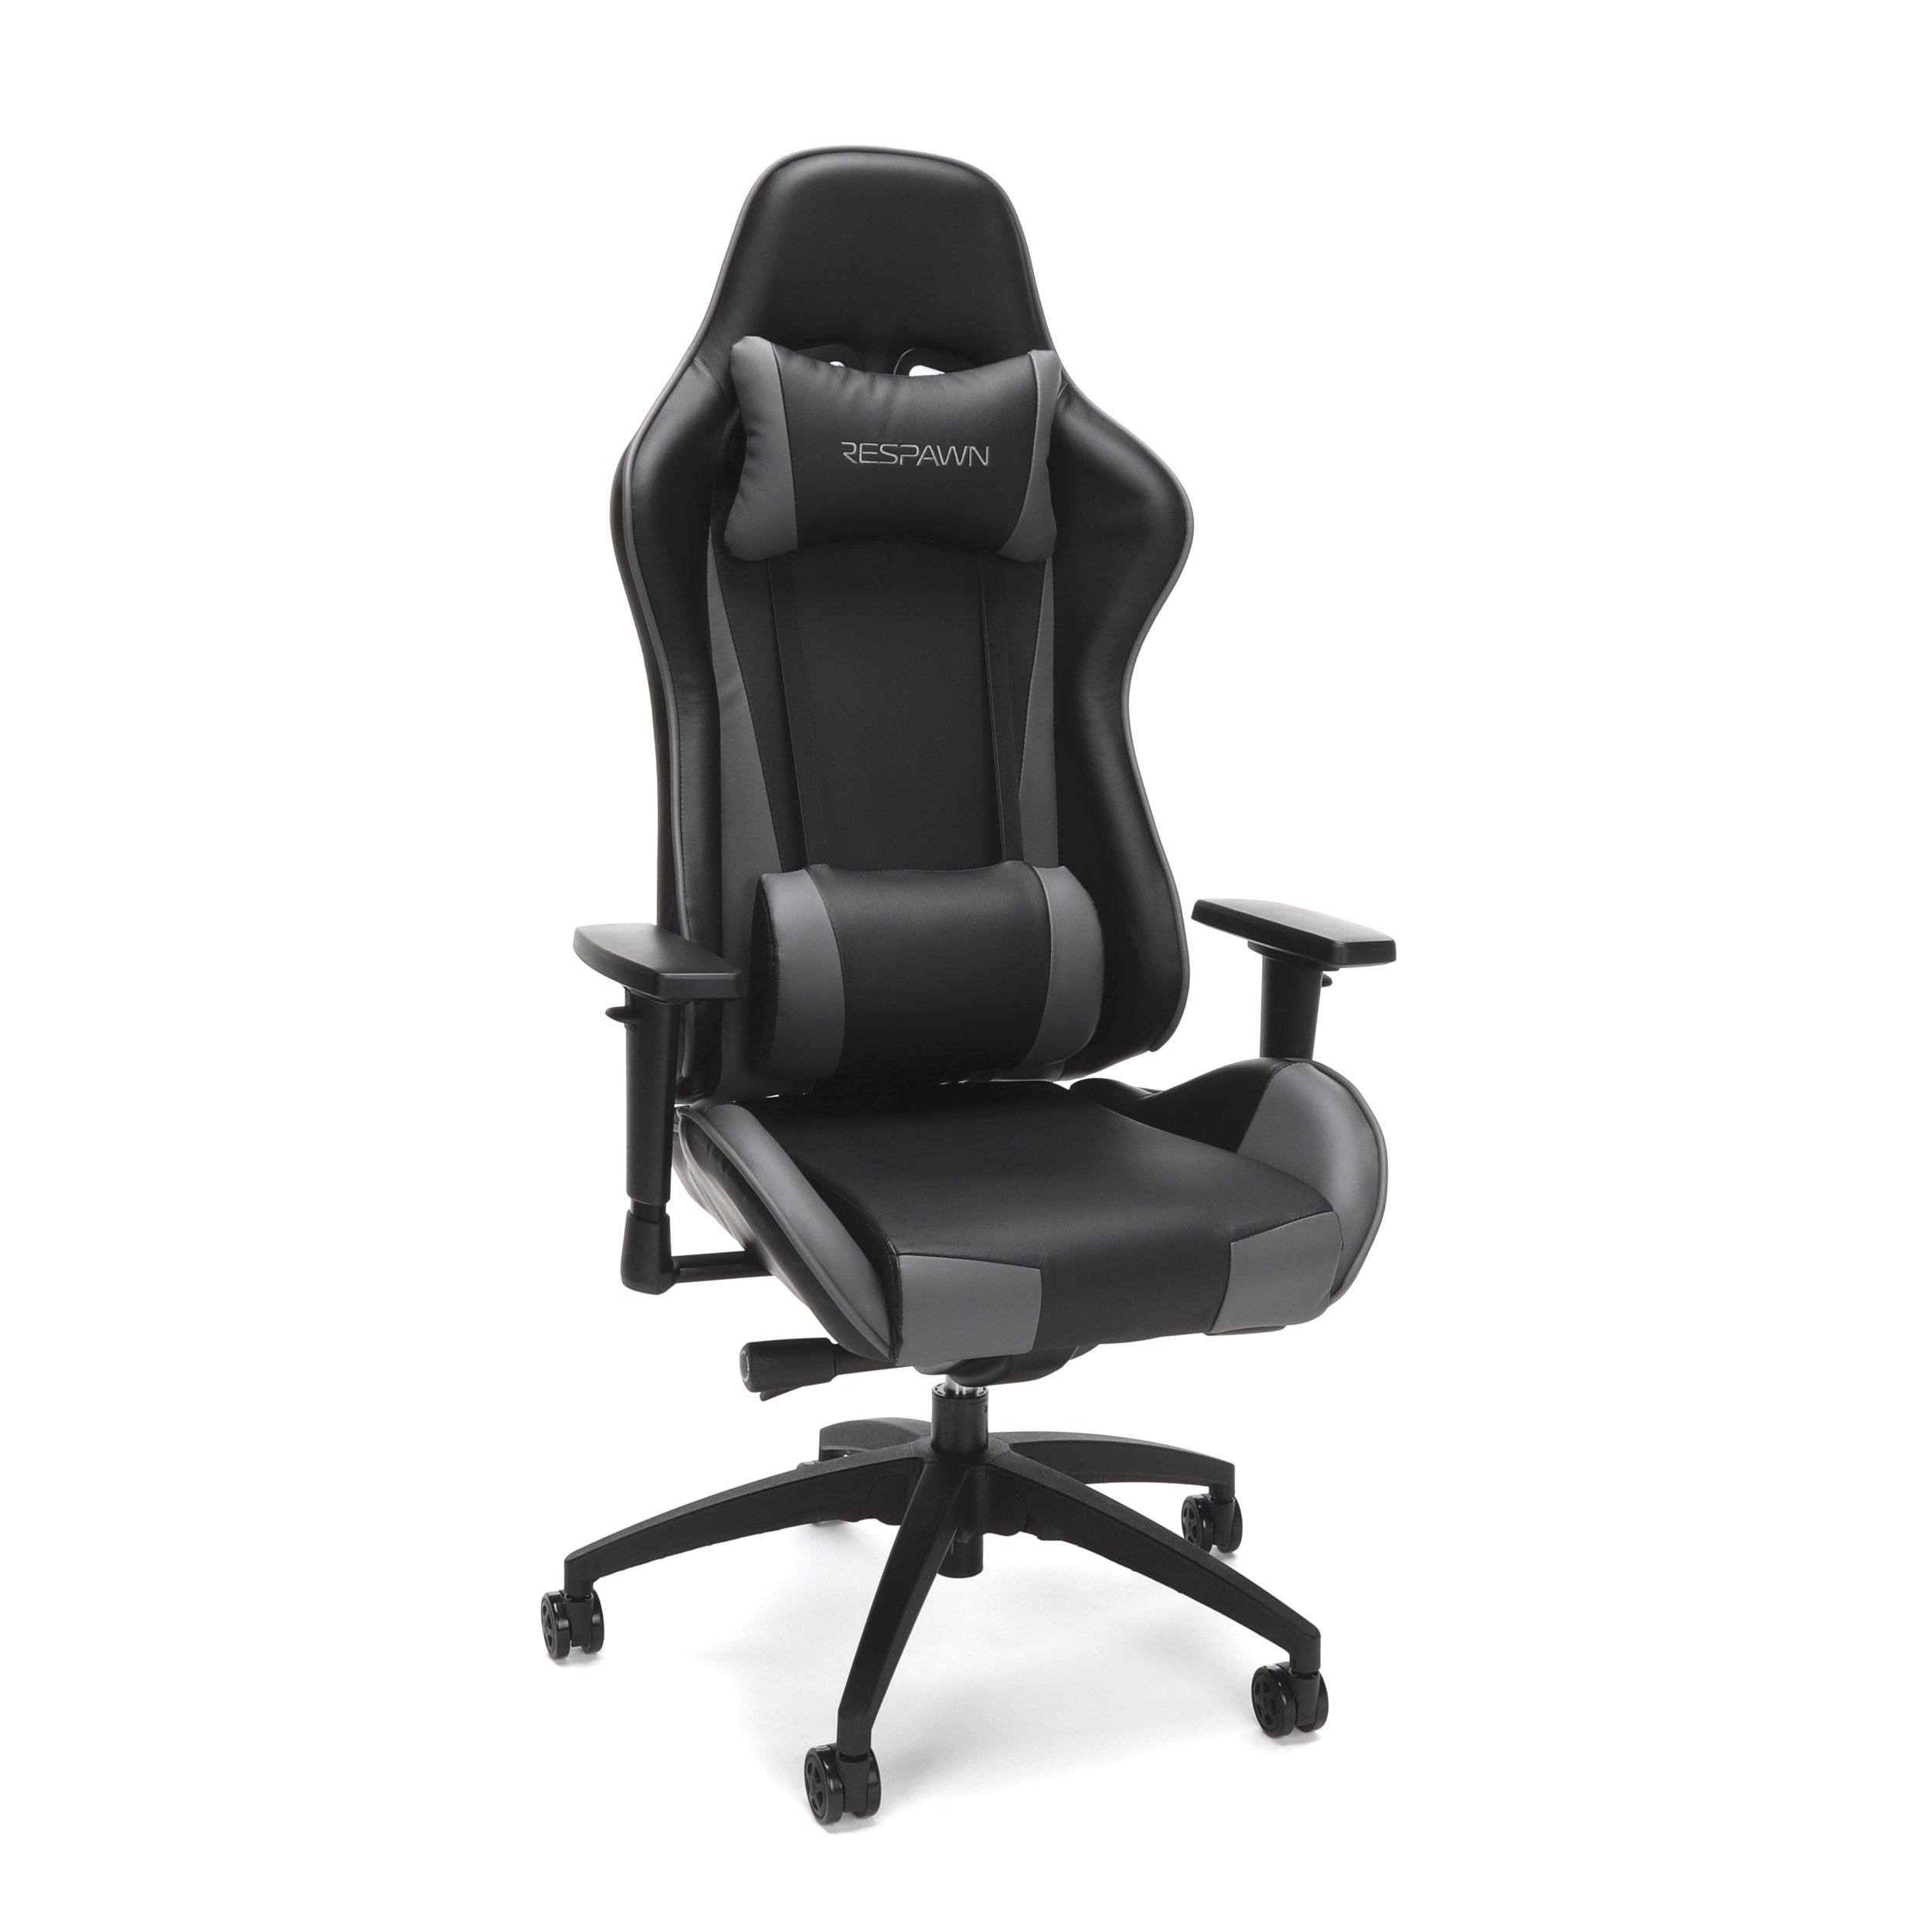 RESPAWN-105 Racing Style Gaming Chair - Reclining Ergonomic Leather Chair, Office or Gaming Chair (RSP-105-GRY)